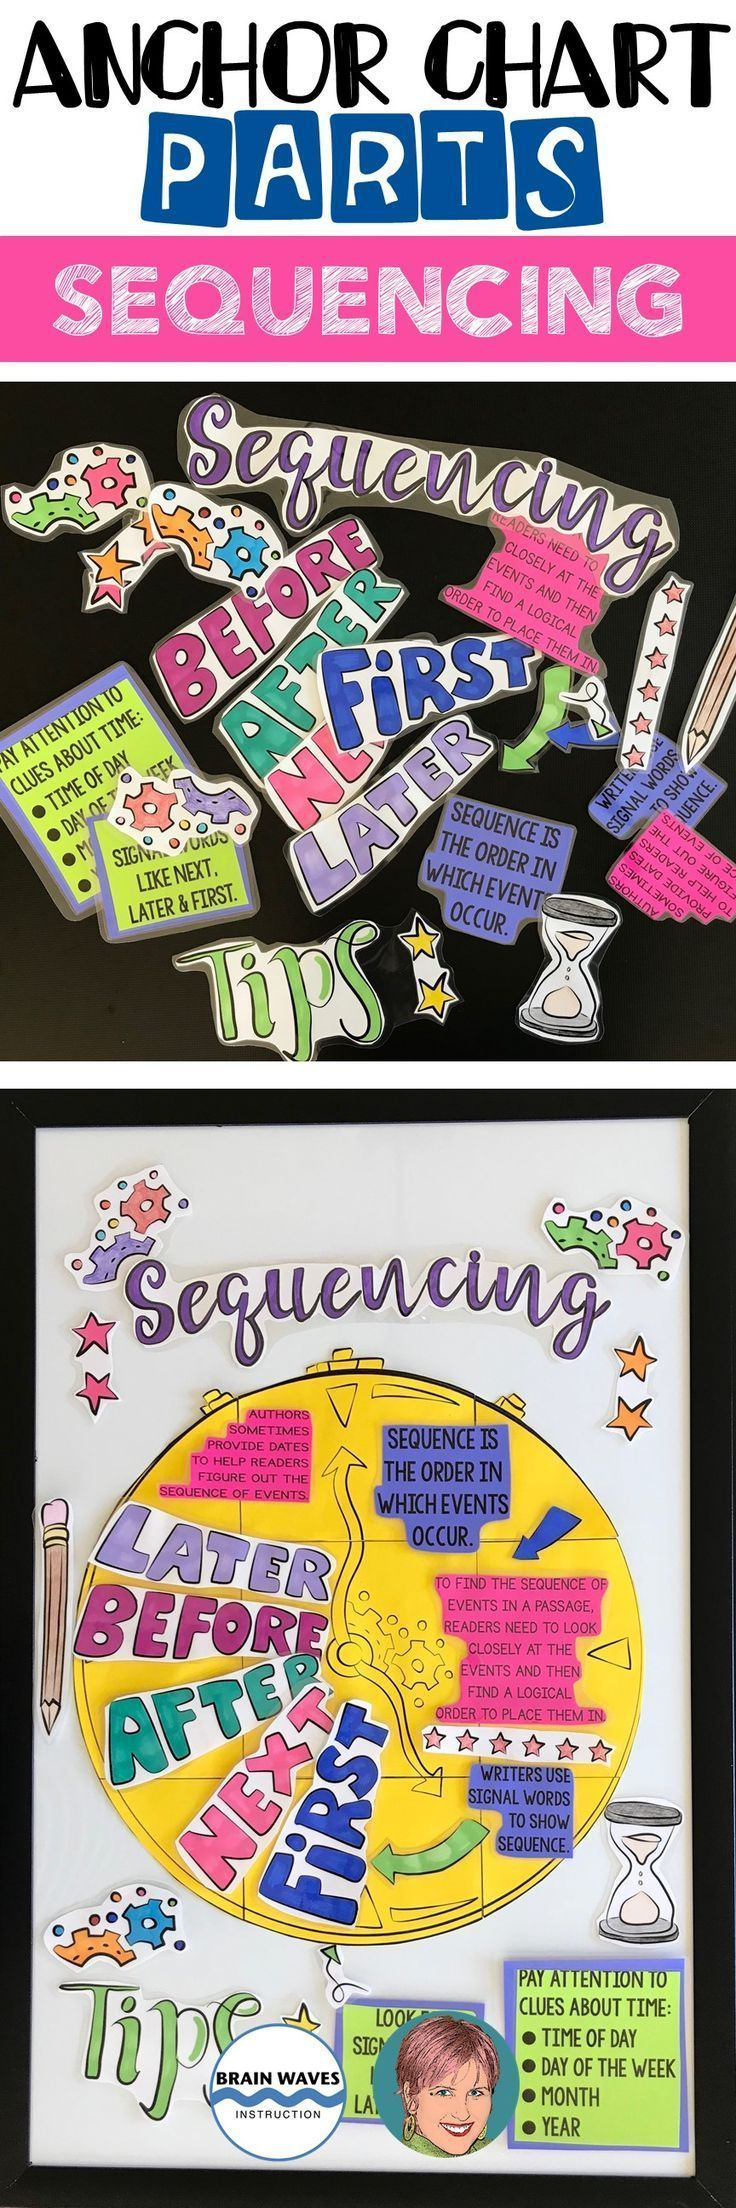 Help students learn all about sequencing with this fun anchor chart! It's filled with 30+ anchor chart parts that students create and assemble to make a collaborative anchor chart display! Not only will students learn about the sequence of events, they'll also have more ownership of their learning. The end result is a fun anchor chart created by students! #anchorchart #anchorcharts #anchorchartdisplay #sequencing #sequence of events #readingisfun